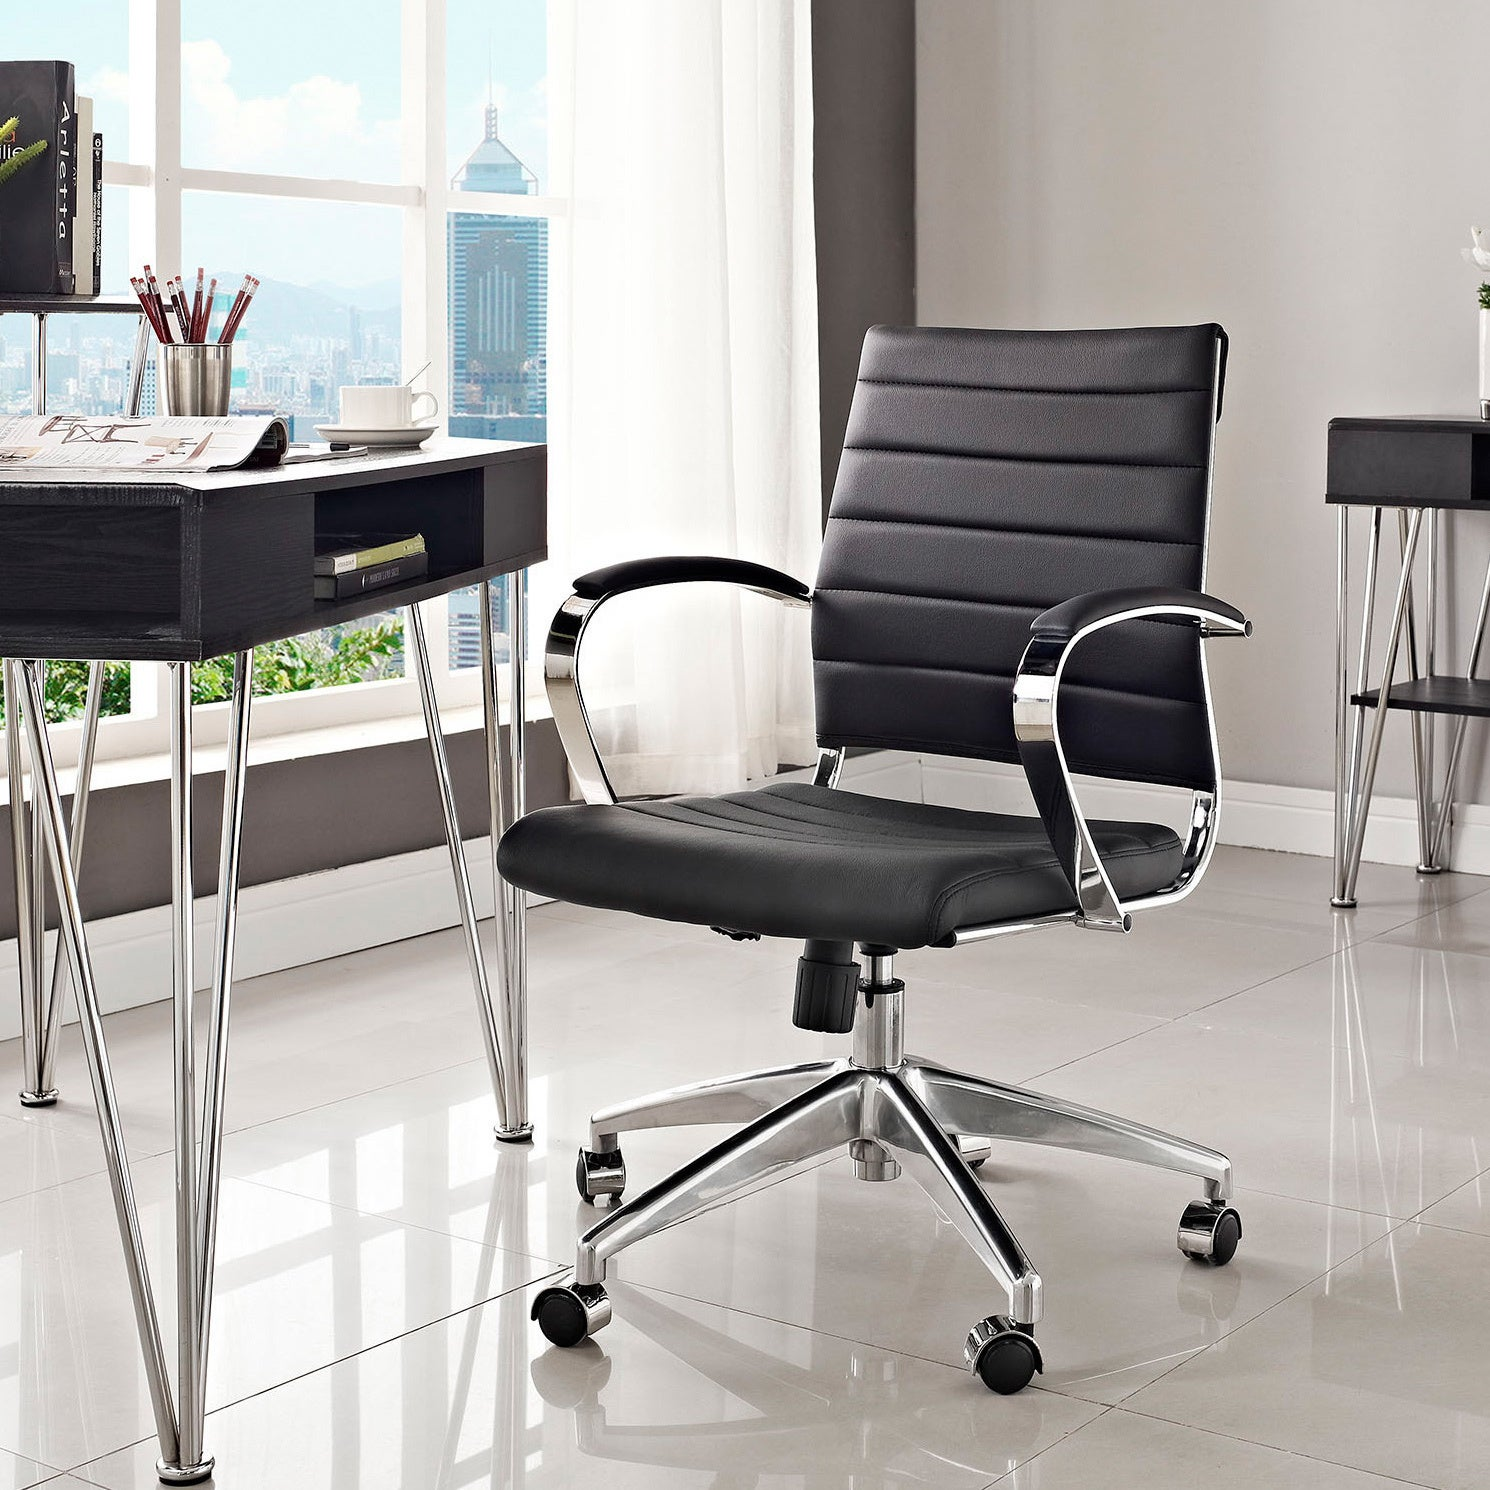 Jive Black Ribbed Vinyl Mid Back Executive Office Chair   Free Shipping  Today   Overstock   15726509